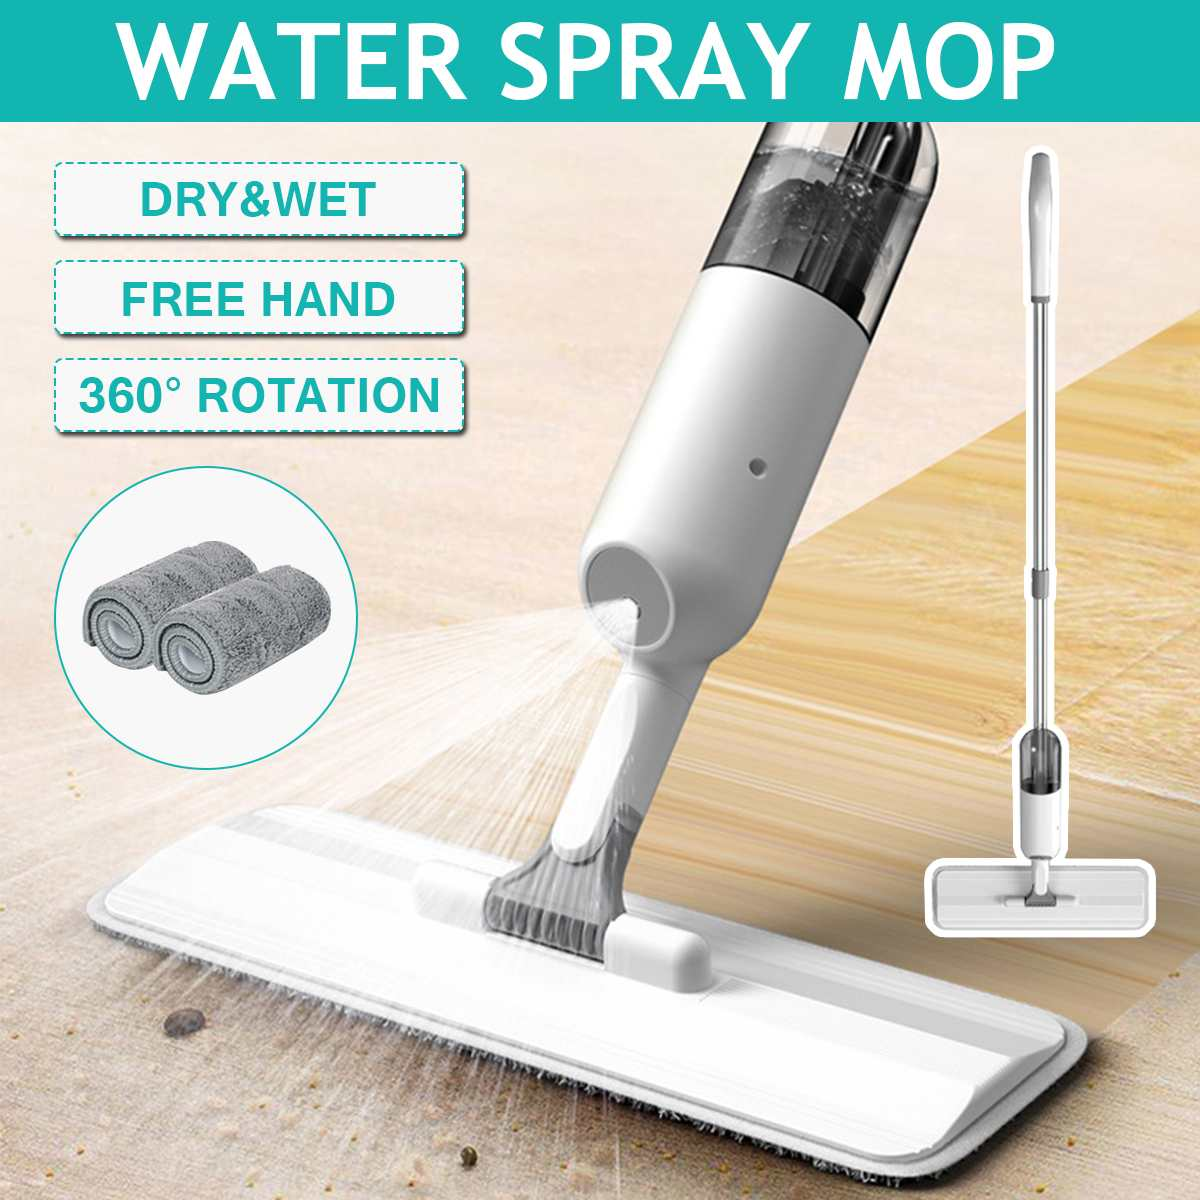 38x12x126cm Household Tile Floor Mop Water Spray Mop With 2 Pieces Cloth Suitable For Bathroom/Kitchen/Living room